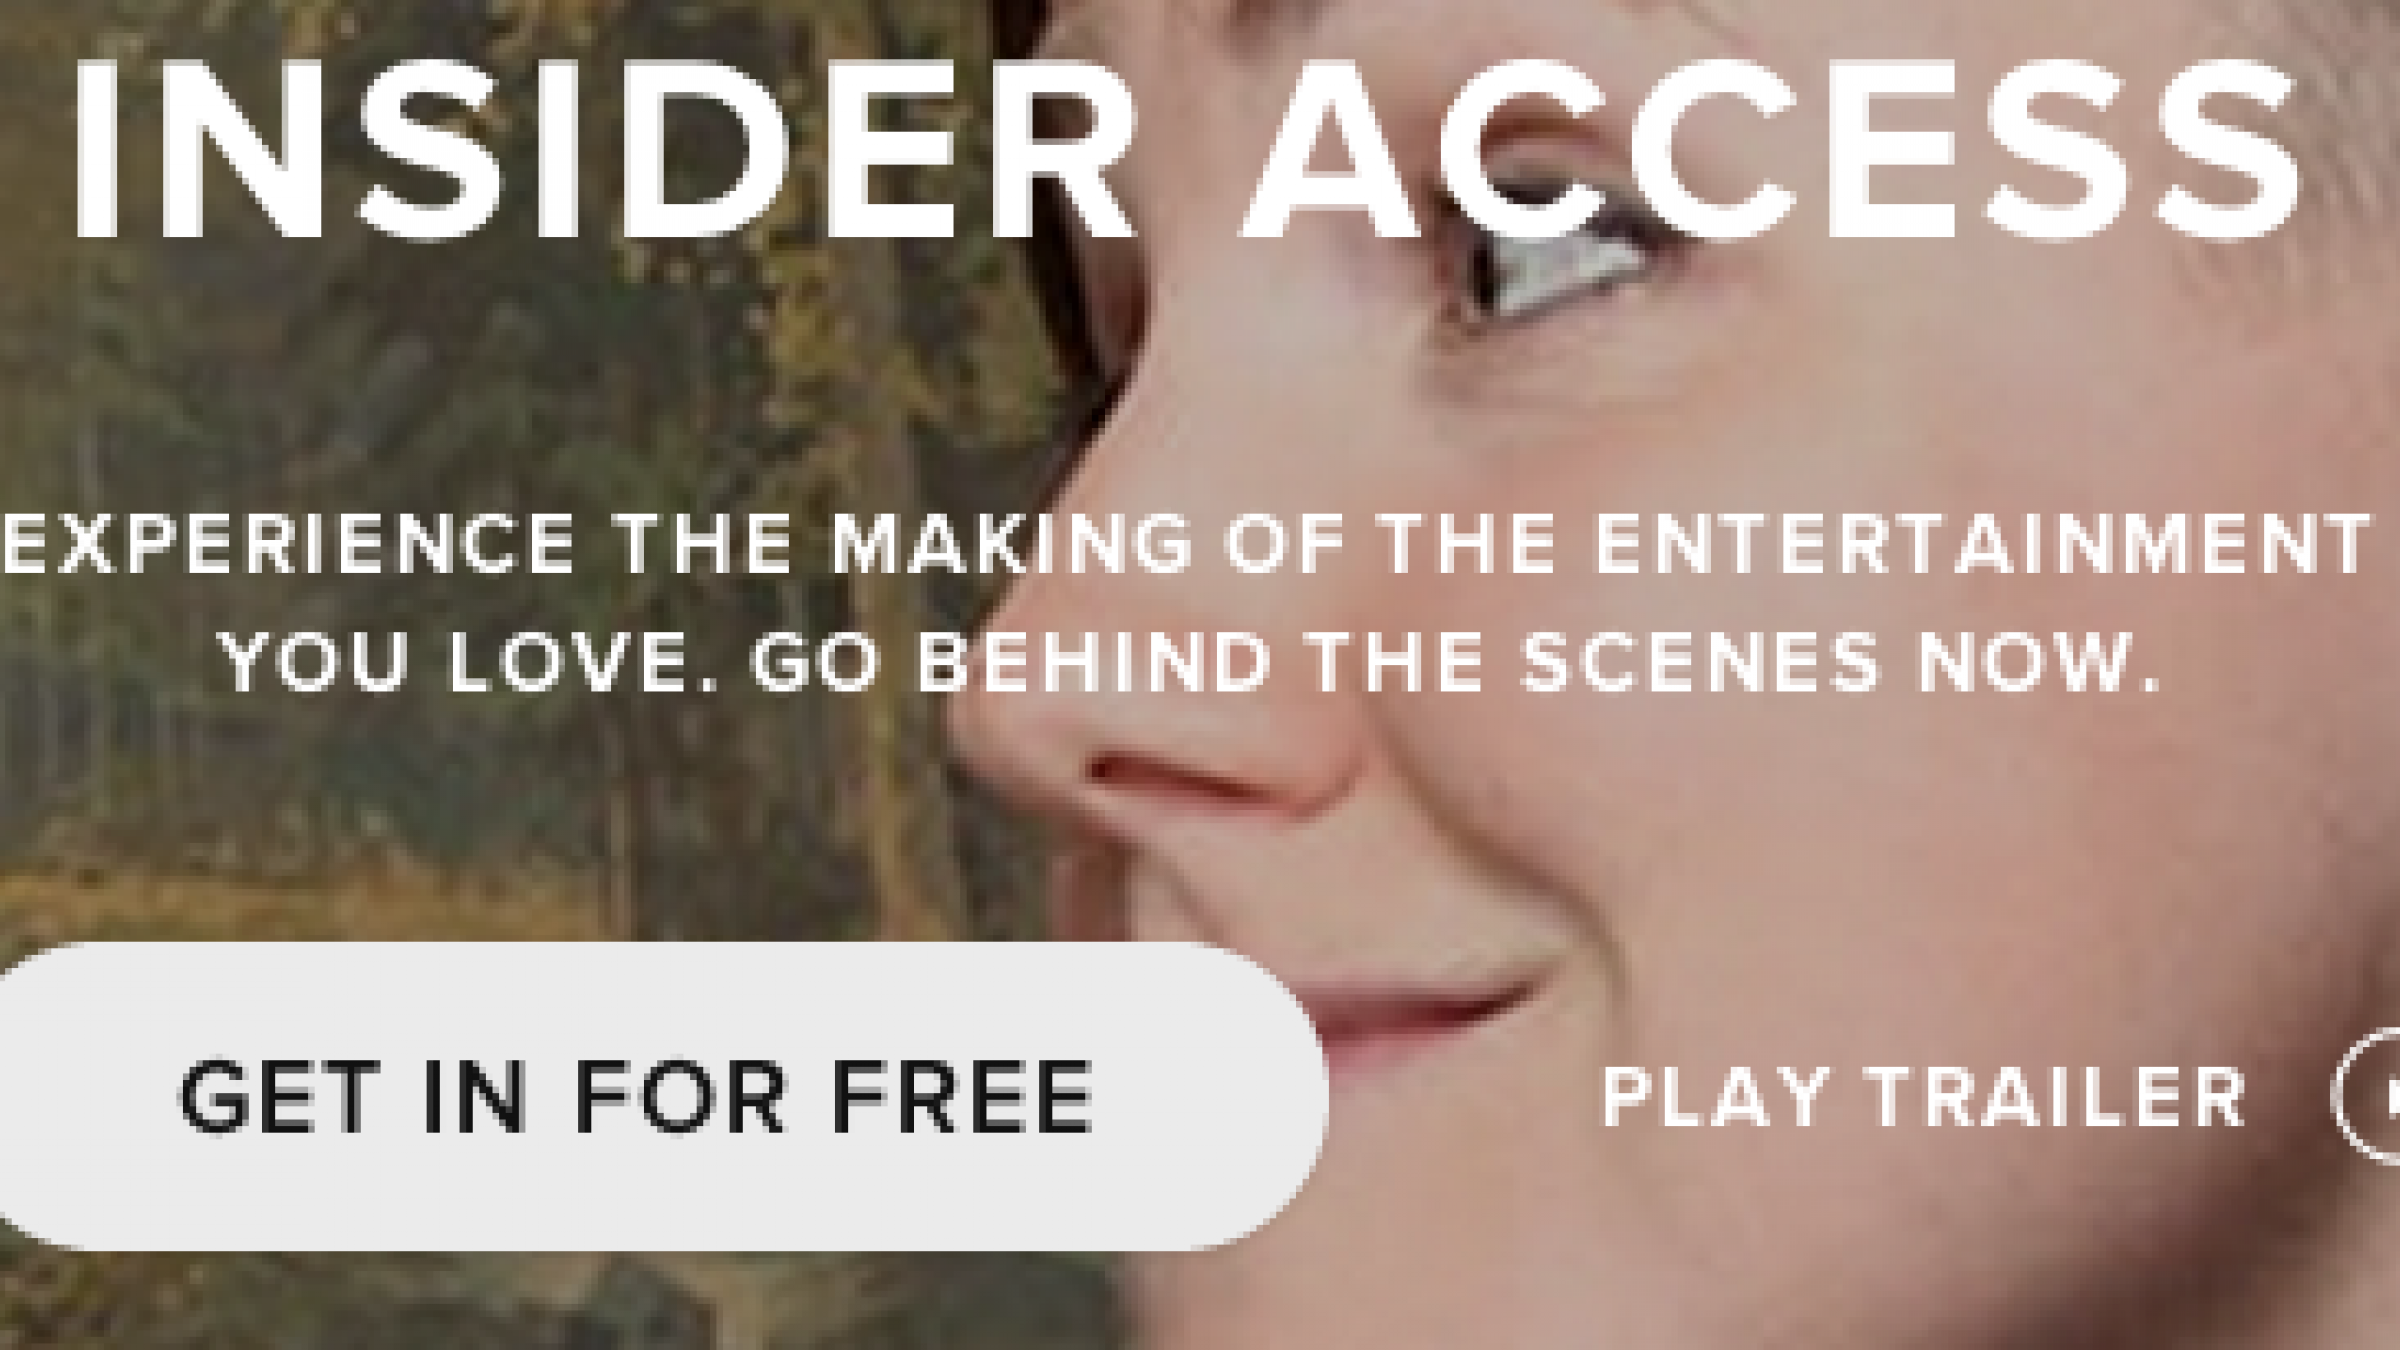 Source & Grow Your Audience: Chill Distribution Platform Launches 'Insider Access'